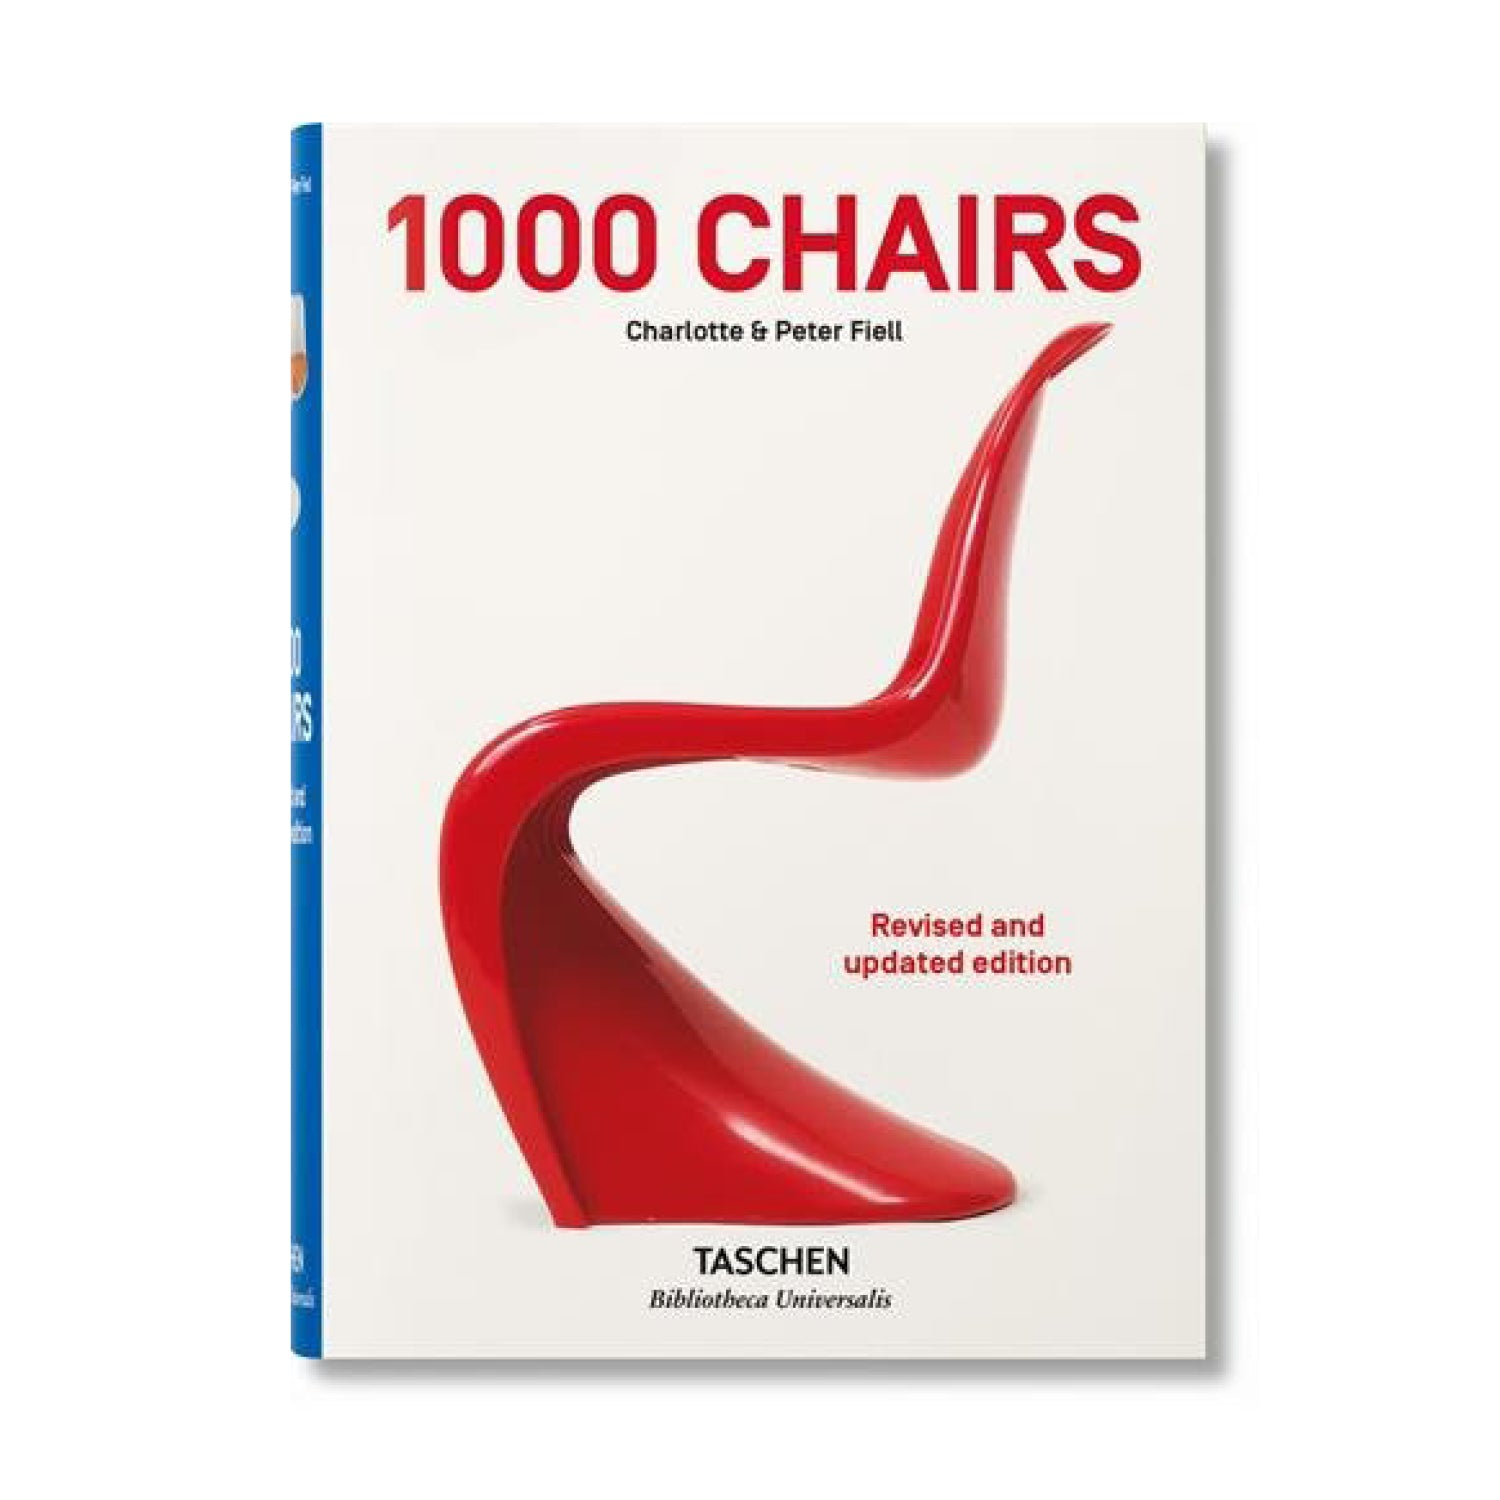 1000 Chairs by Charlotte & Peter Fiell